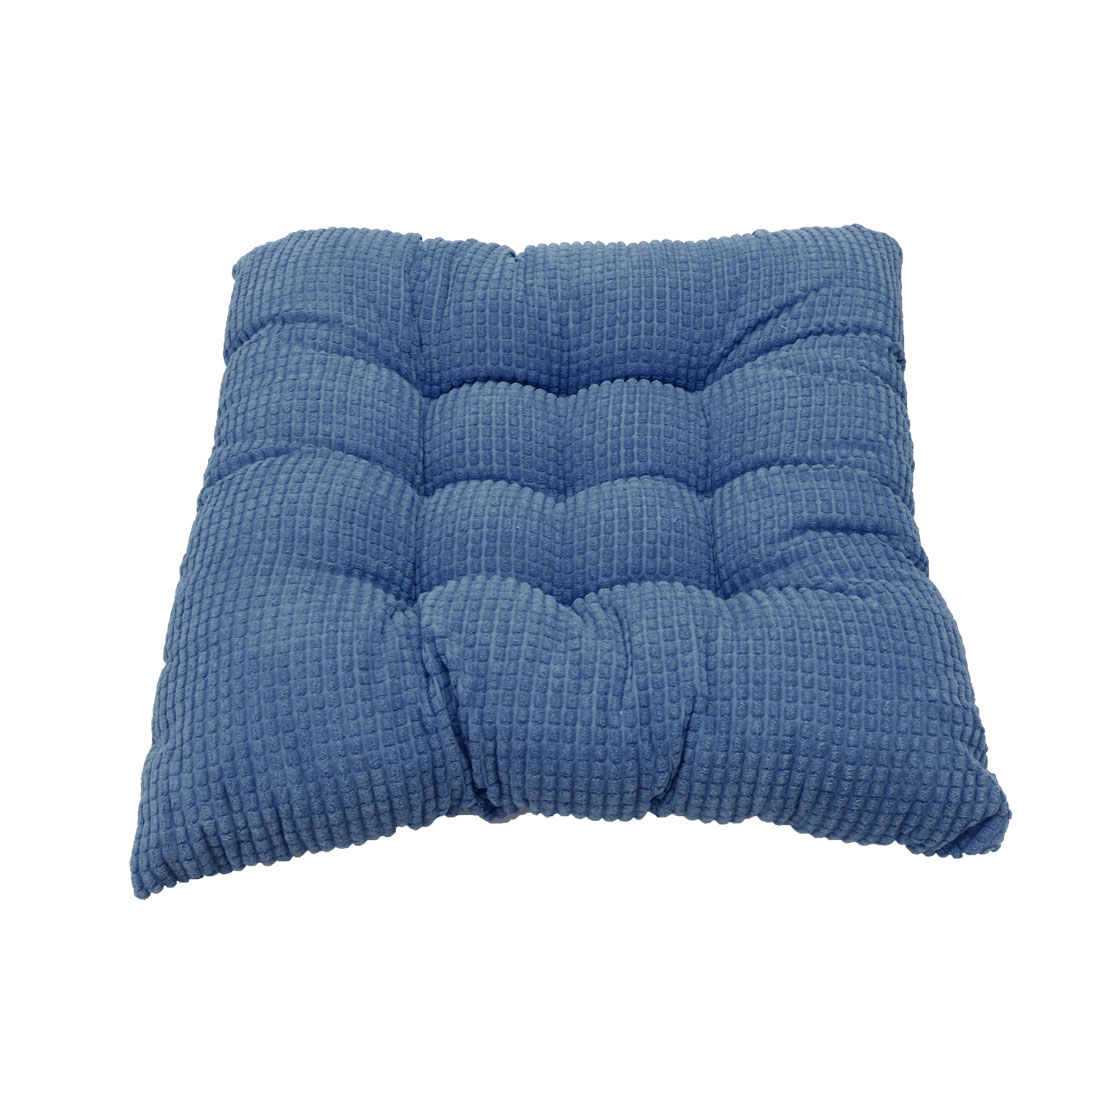 Household Office Corduroy Square Shaped Thickness Chair Cushion Blue